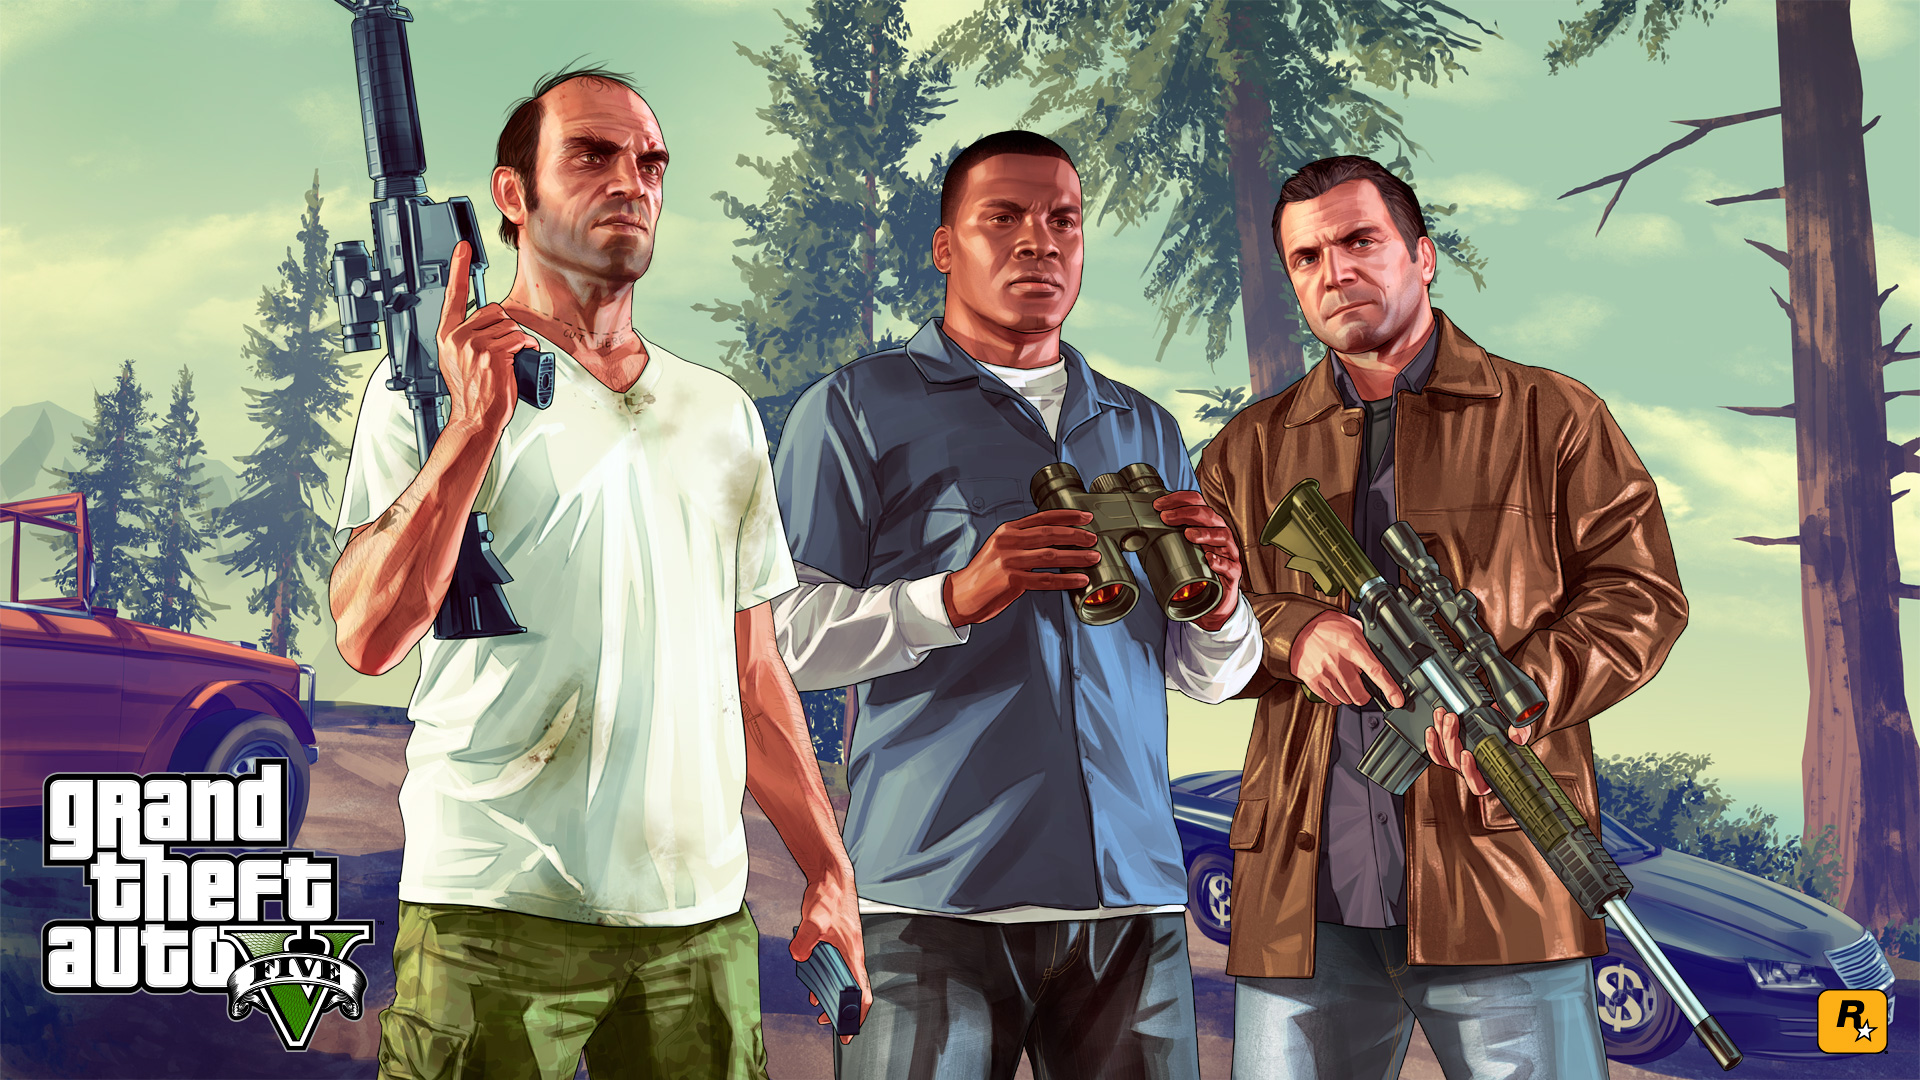 GTA V Story Mode DLC may not be coming